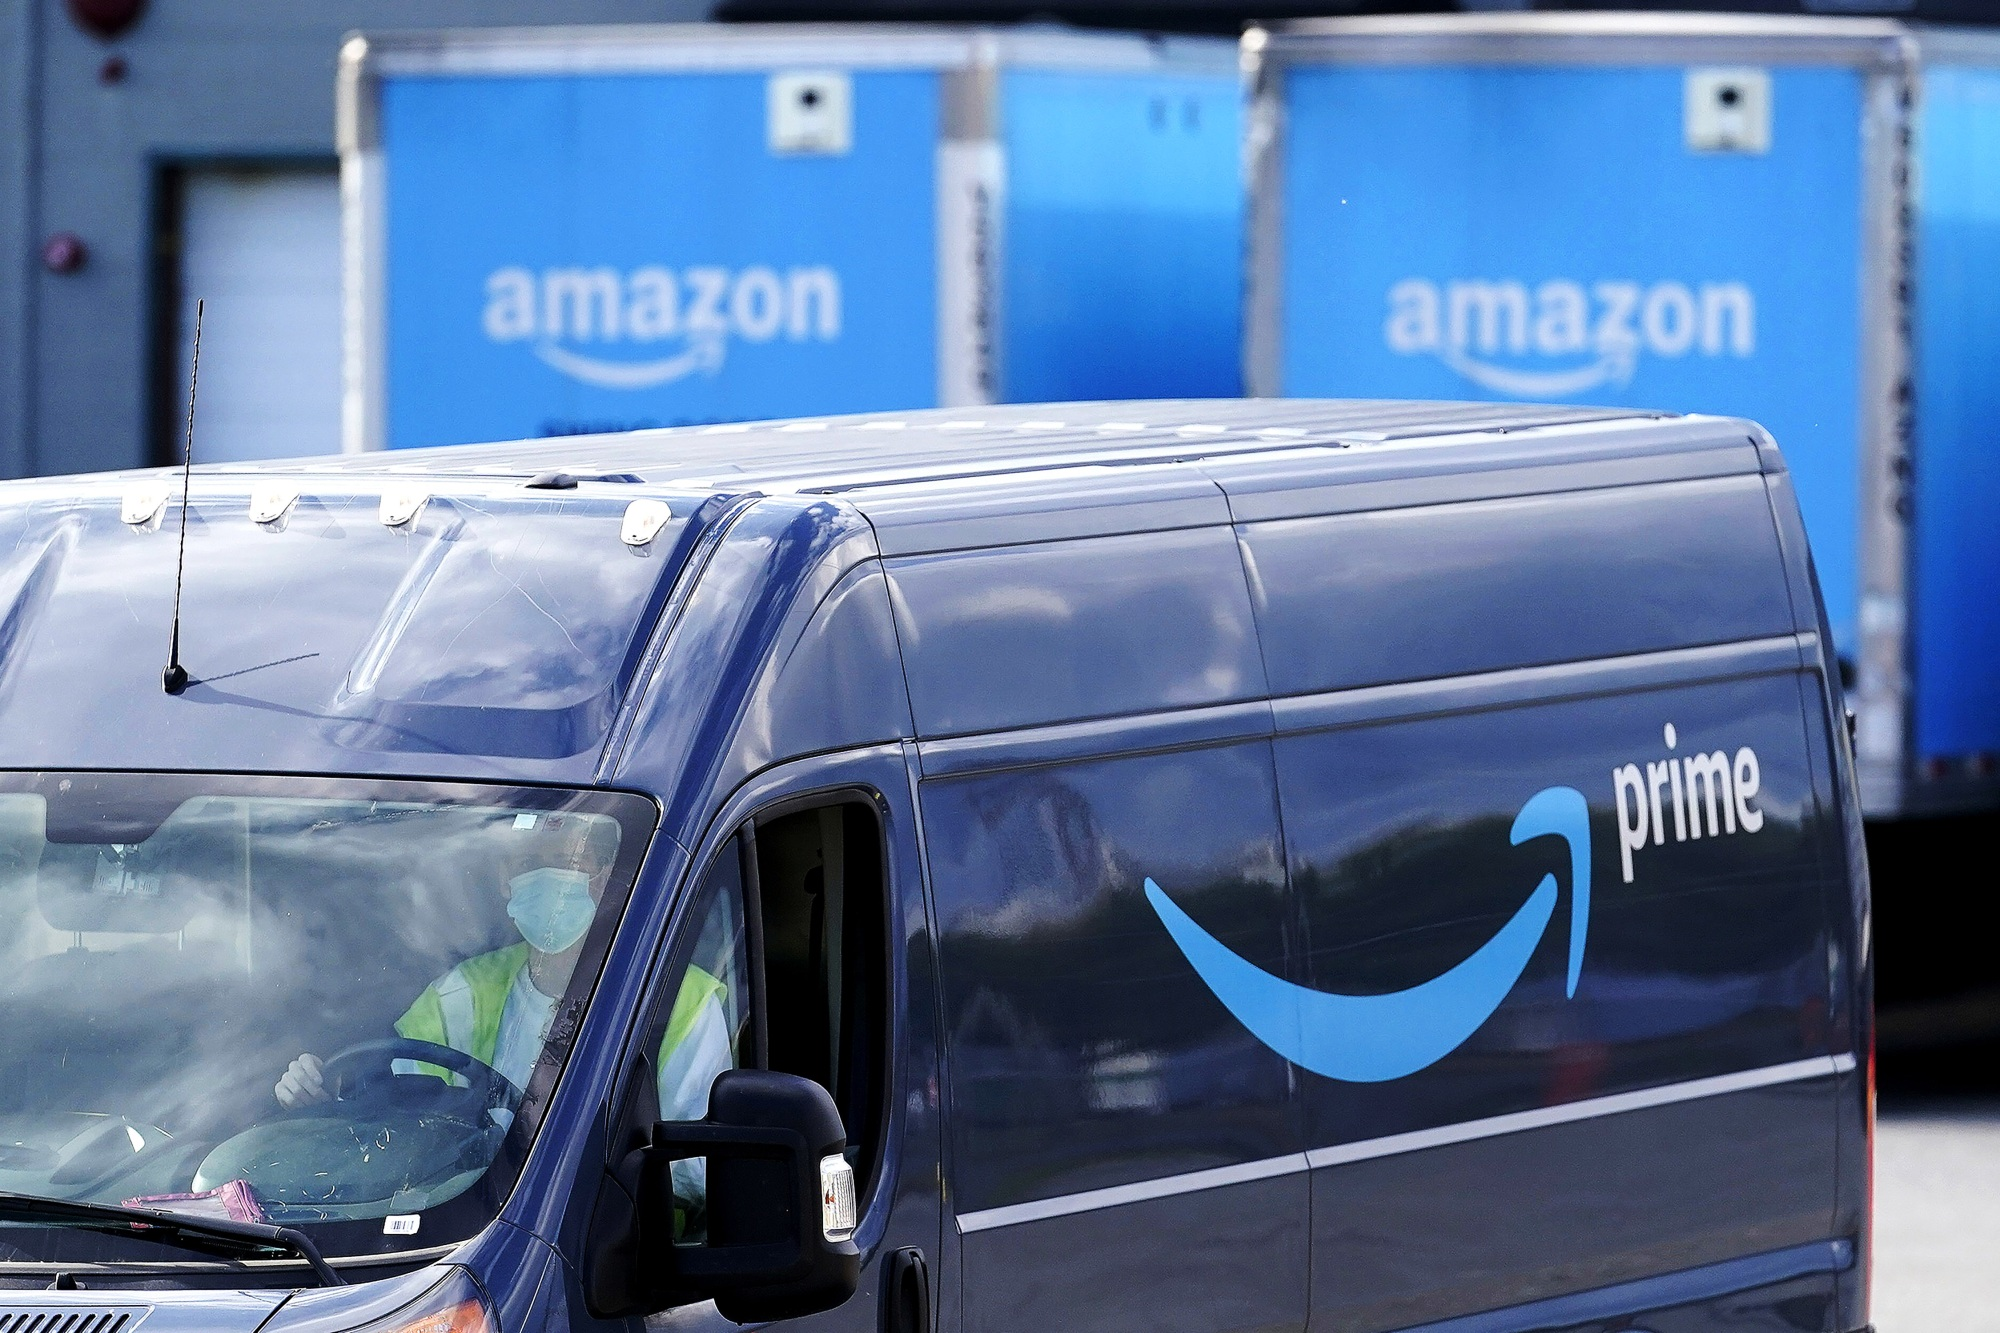 Amazon Acknowledges Issue of Drivers Urinating in Bottles During Delivery Rounds in Apology to Congressman Mark Pocan